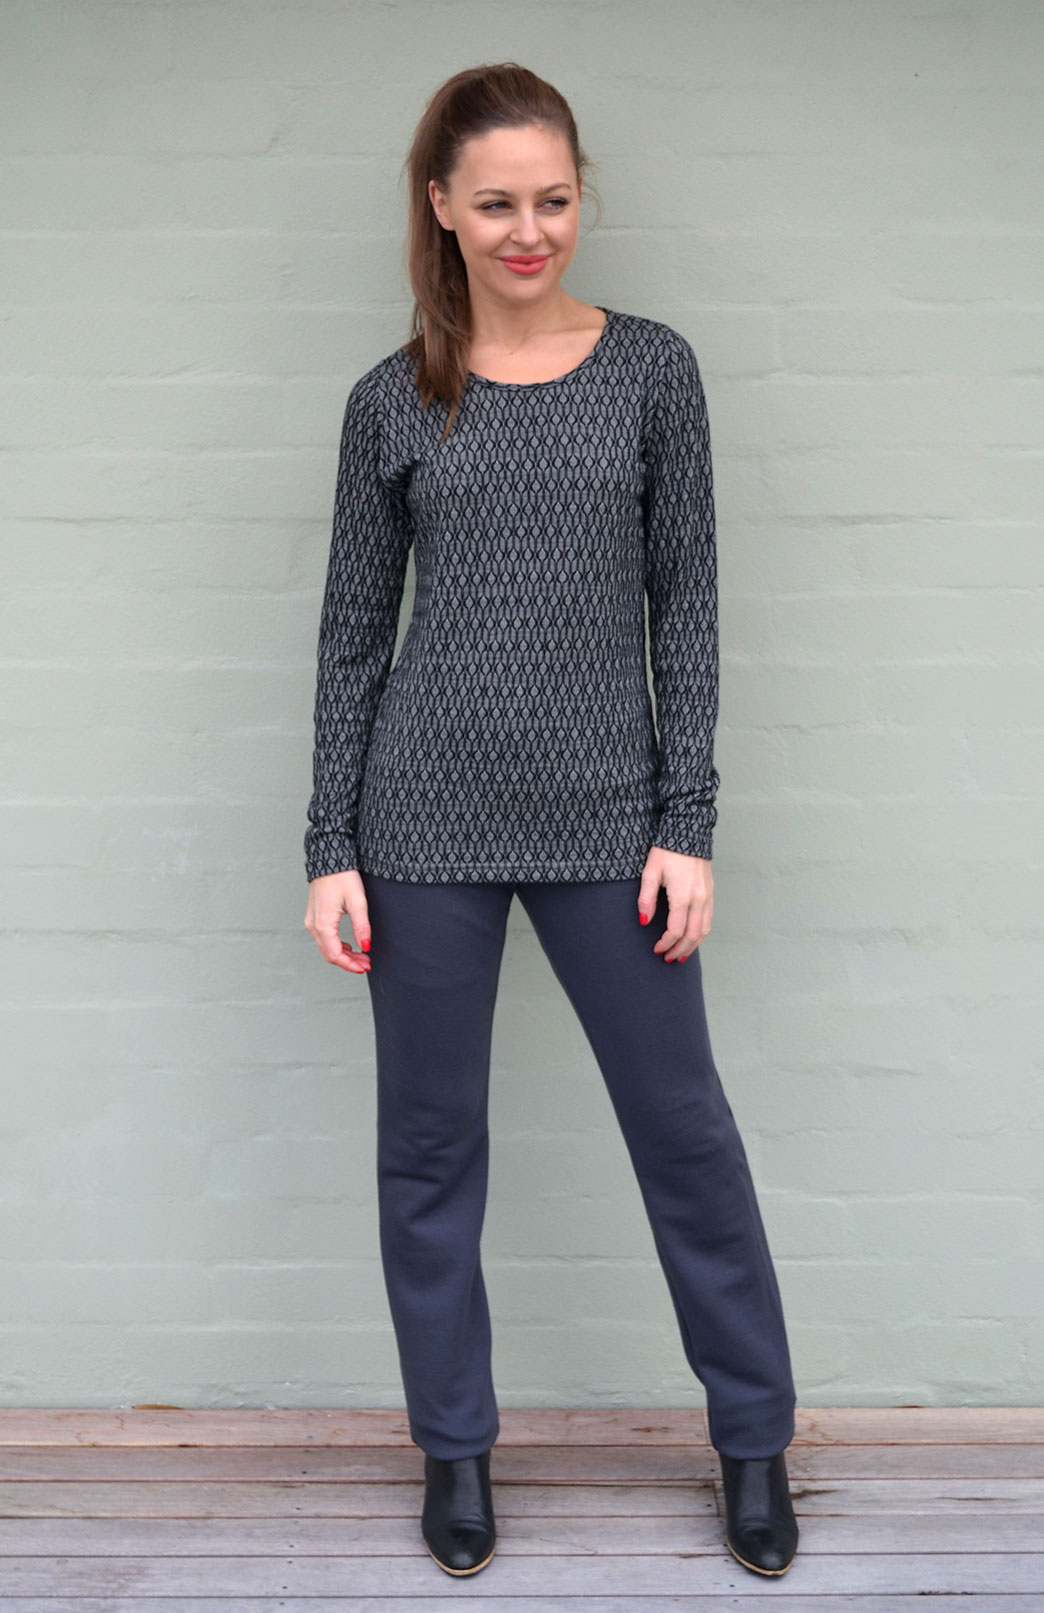 Patterned Round Neck Top in Black Keyhole